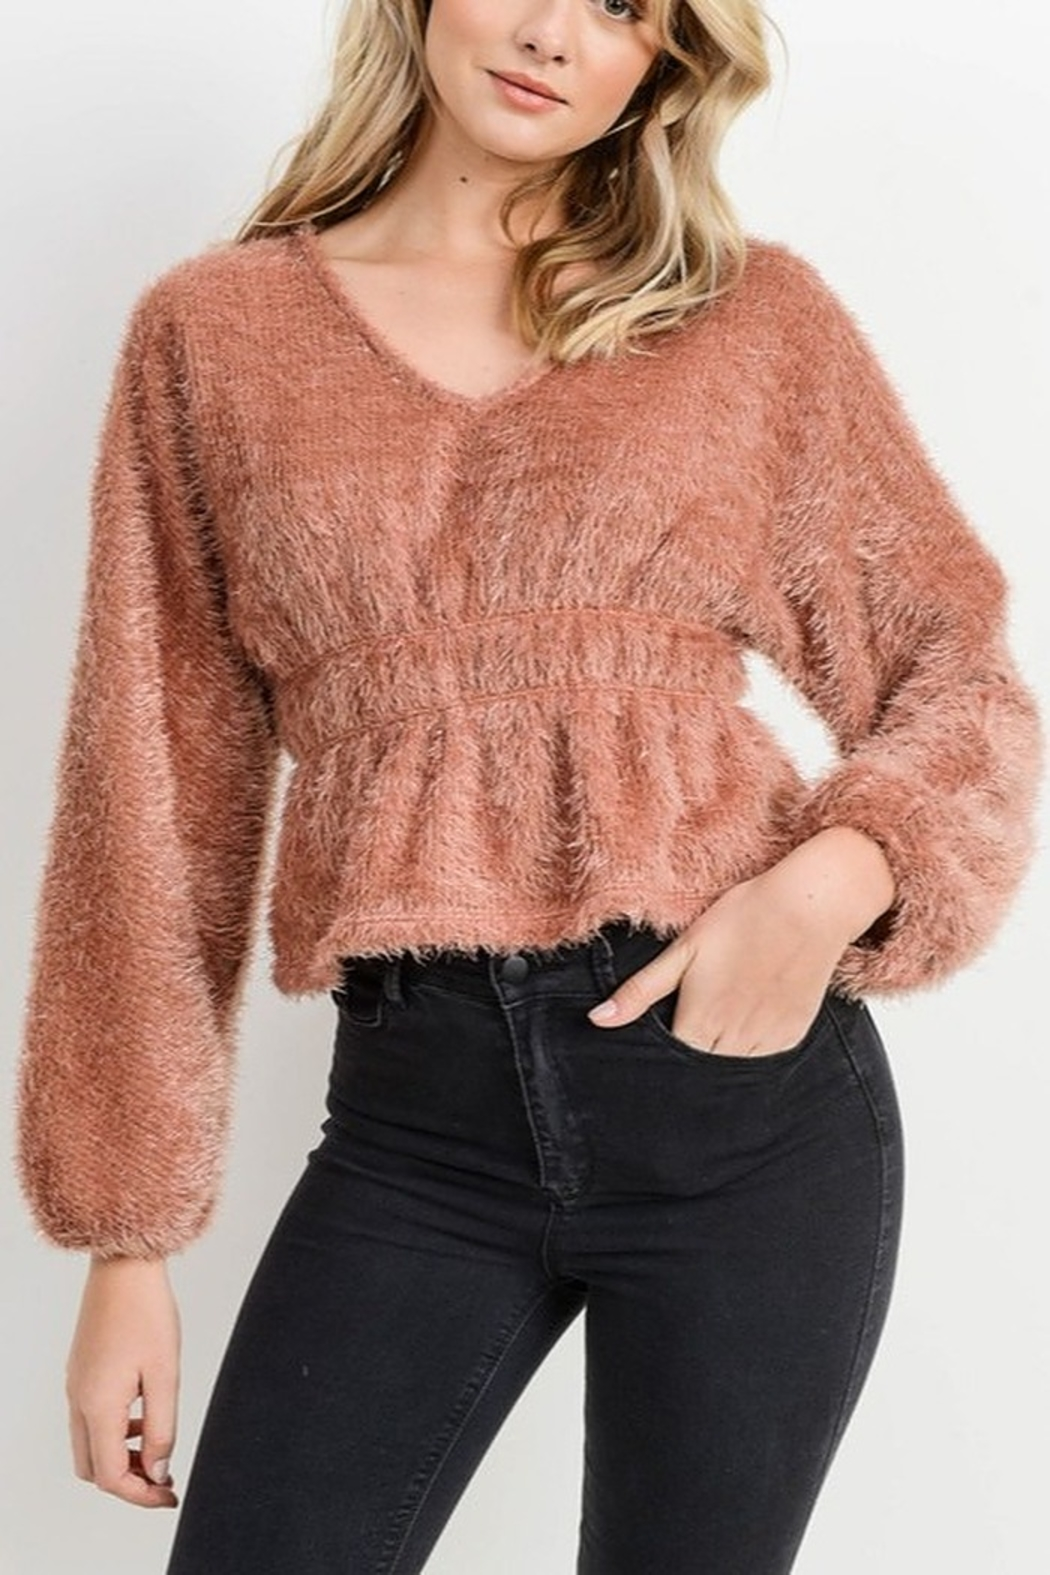 Papercrane Textured Dolman Sweater - Front Cropped Image